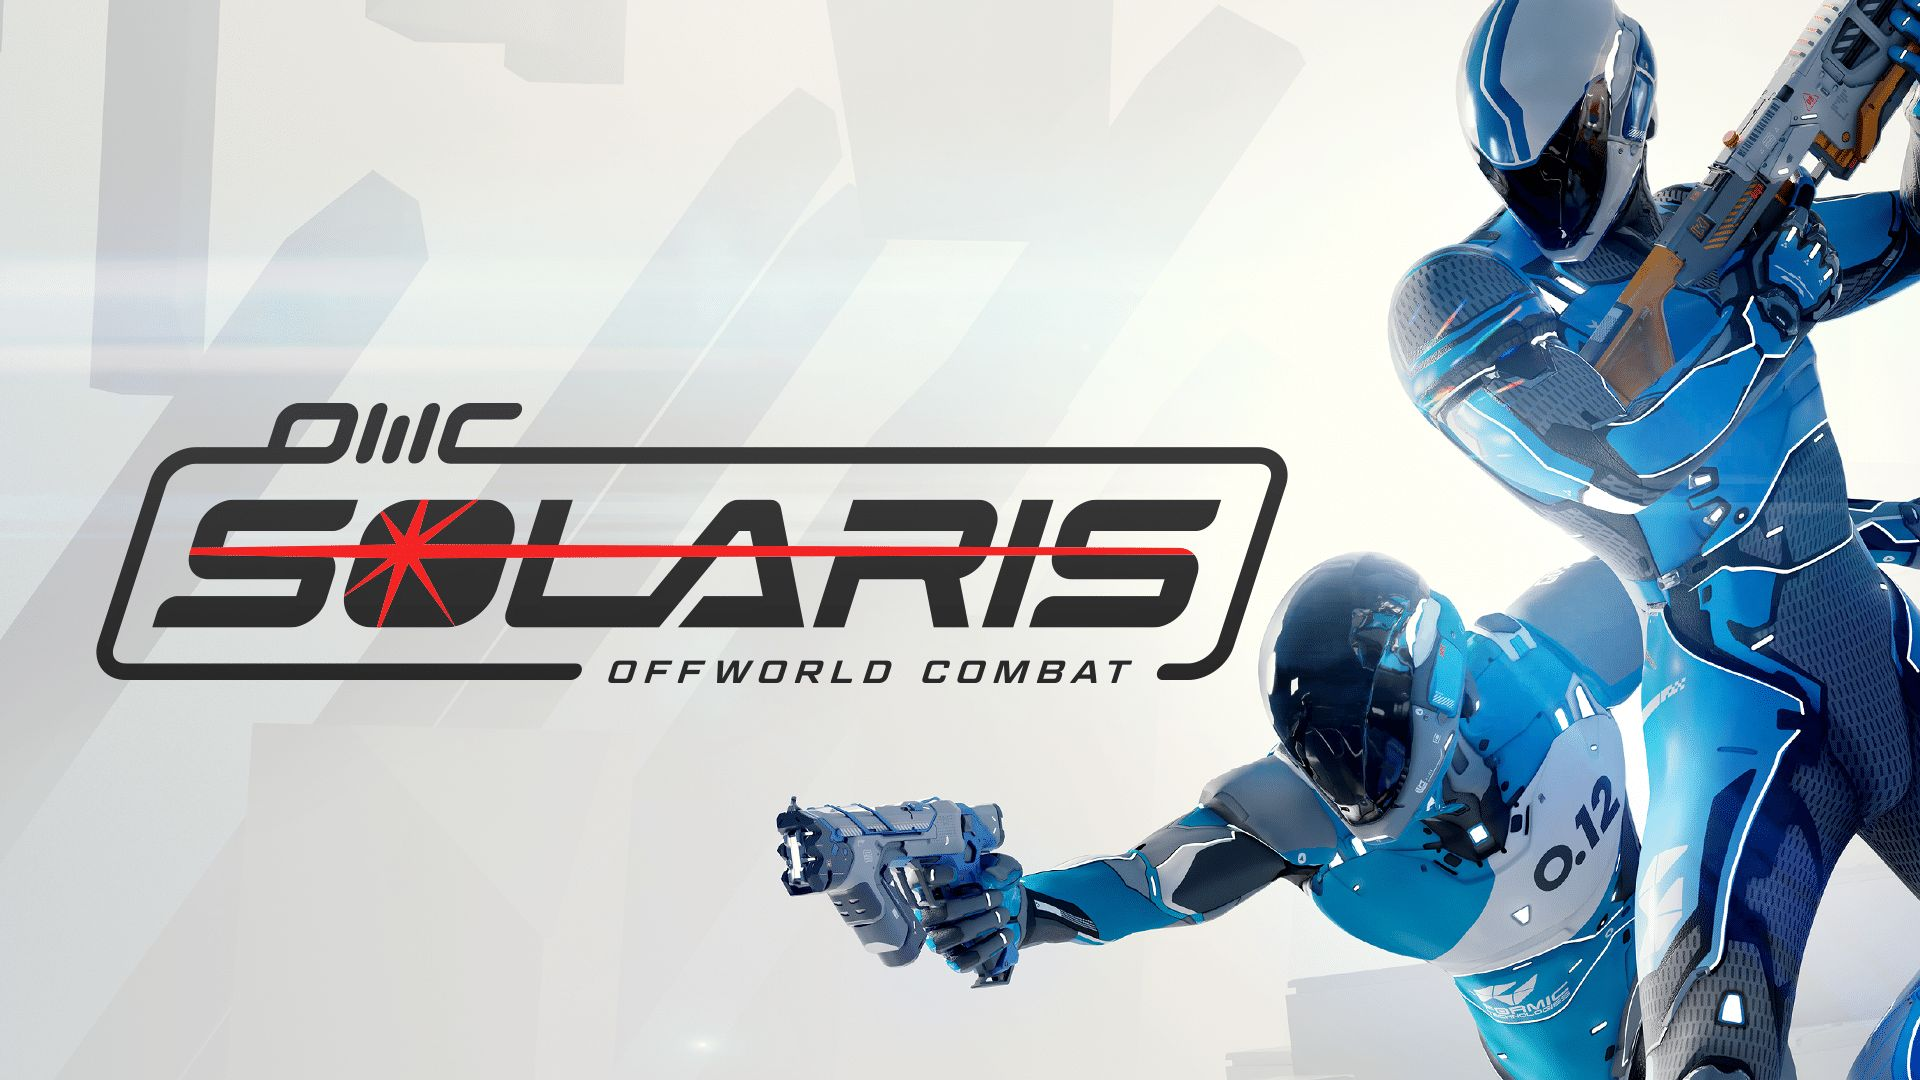 /solaris-offworld-combat-could-be-the-future-of-vr-esports-5r7i3tr5 feature image